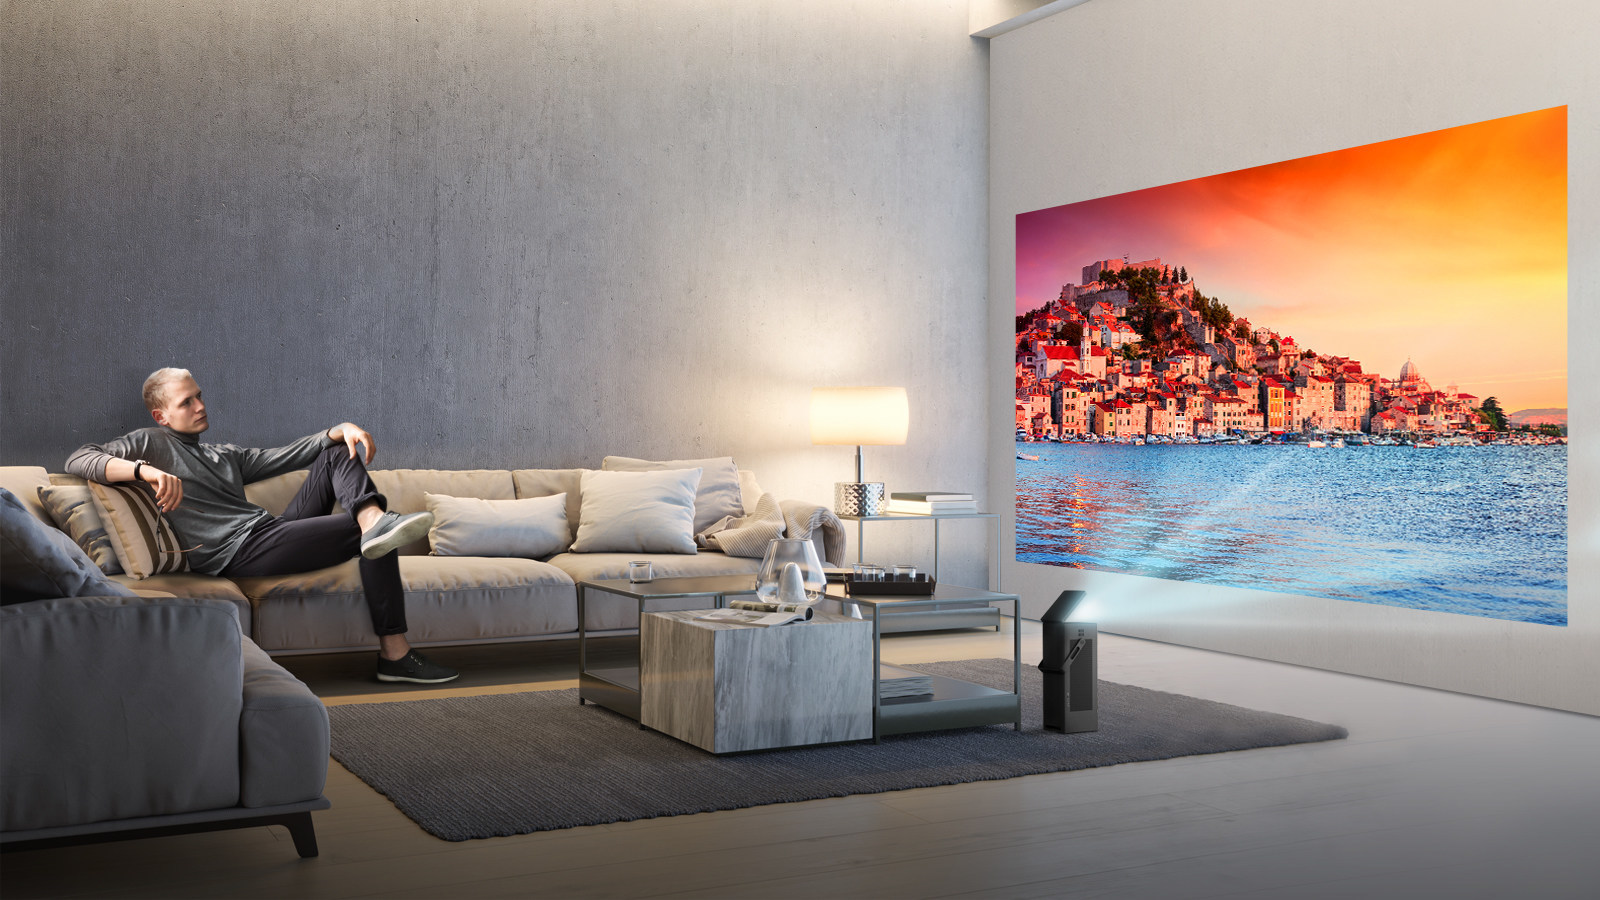 LG announced the HU80KA projector, its first 4K projector, to launch at CES